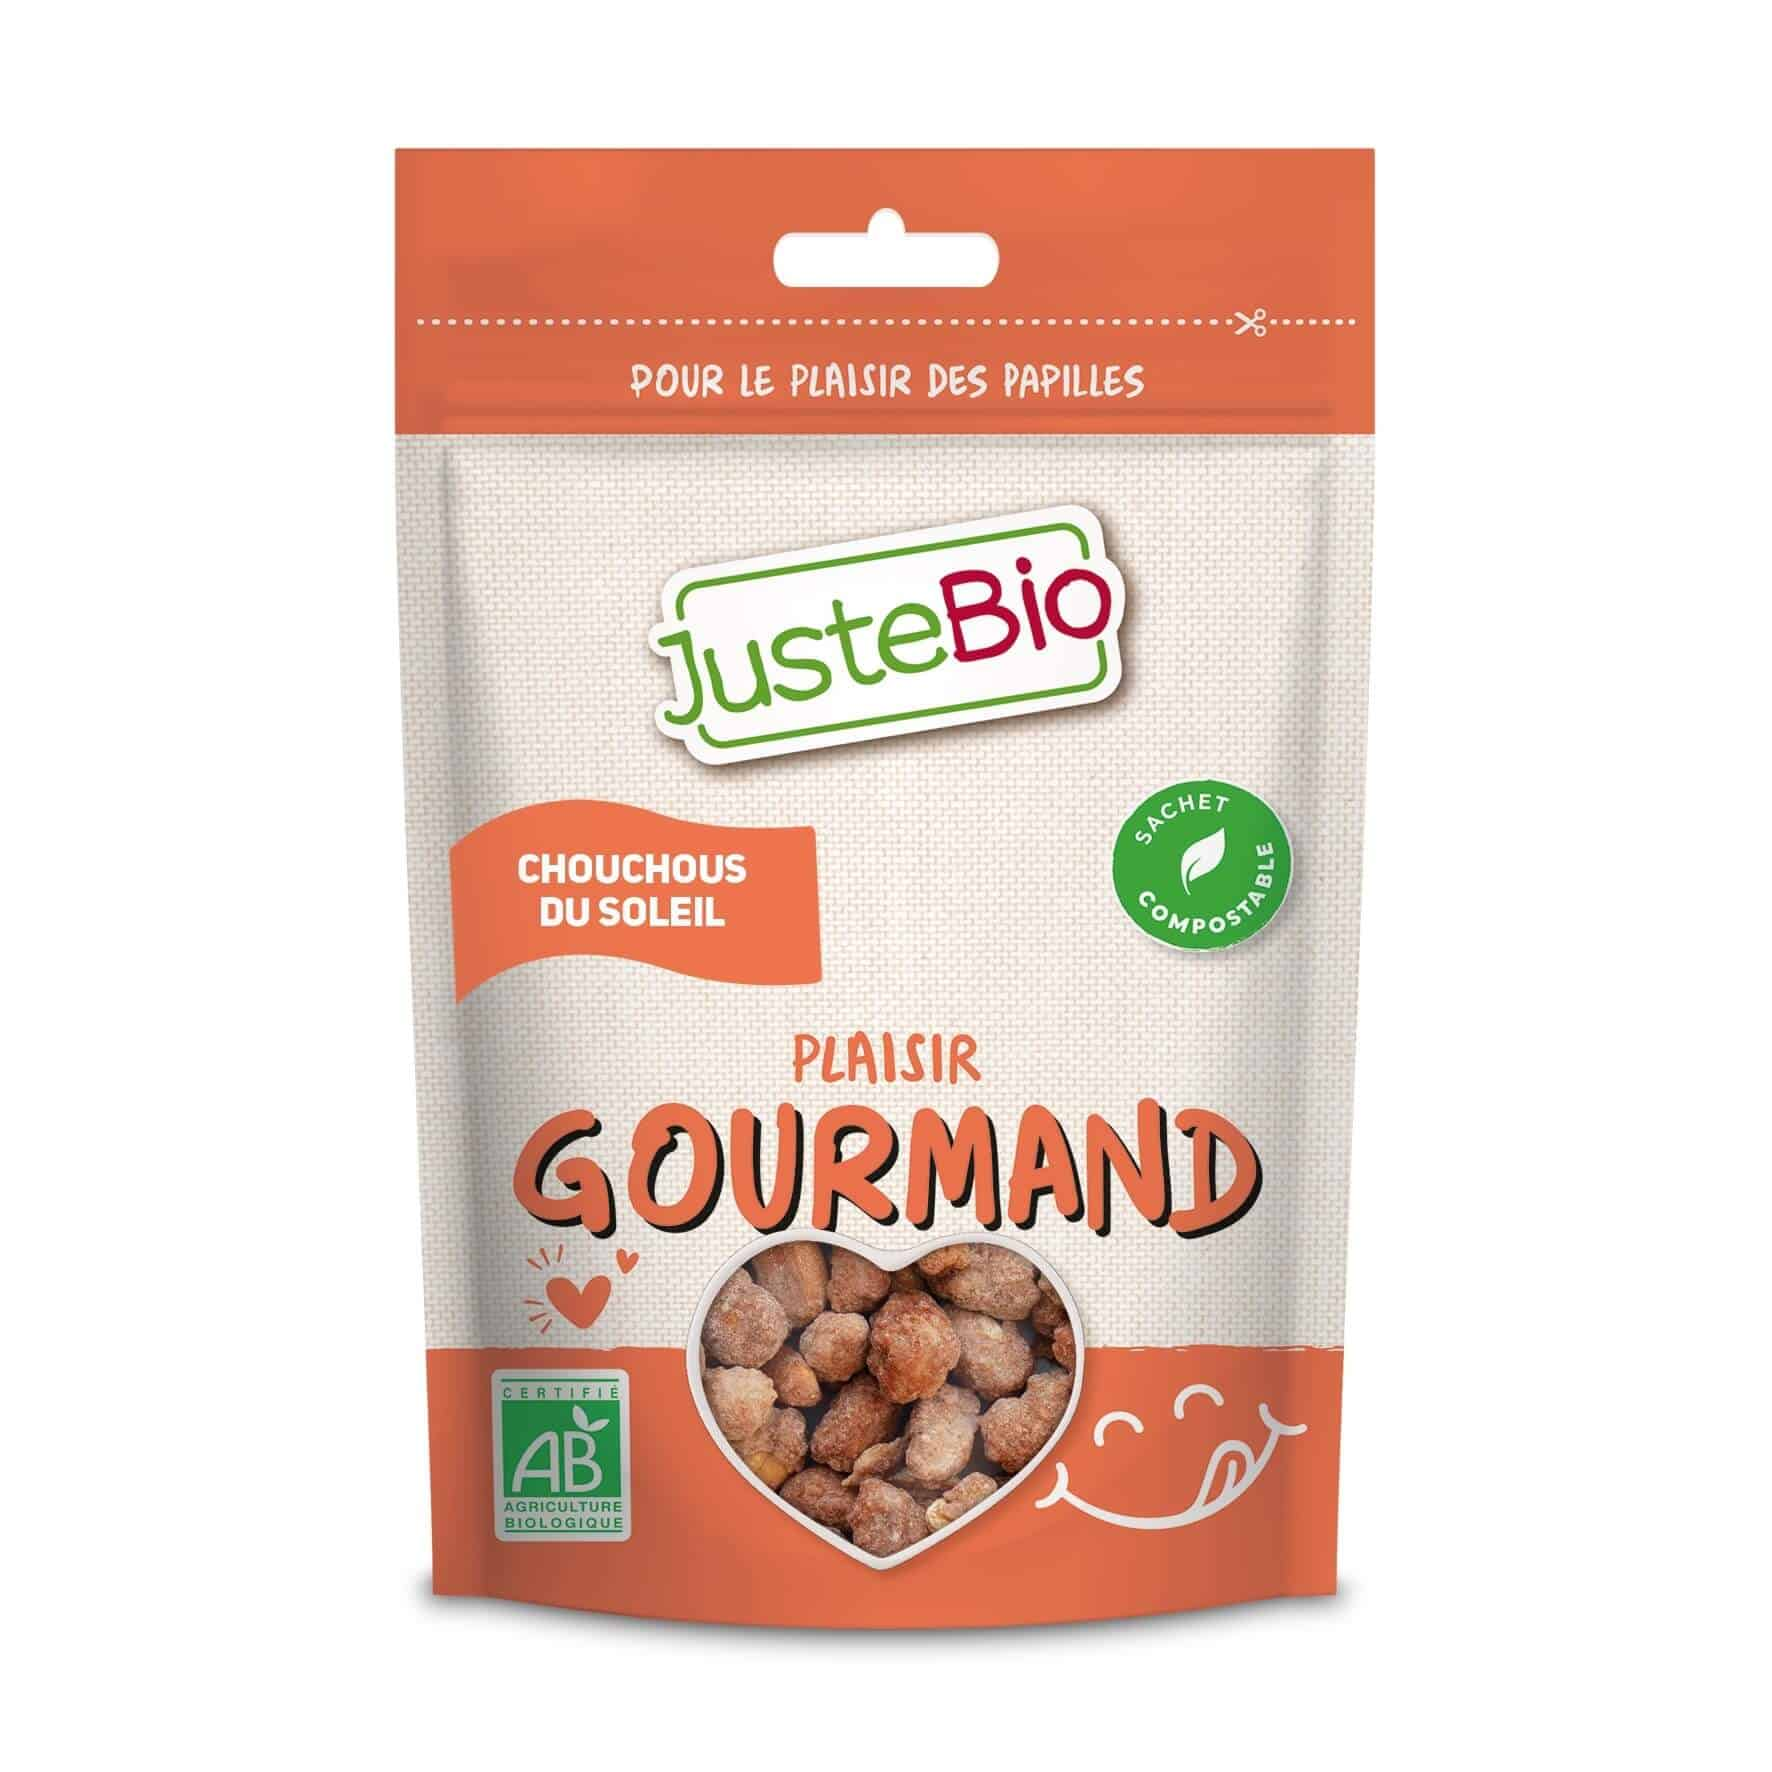 Justebio Pillow Bag PLAISIR GOURMAND